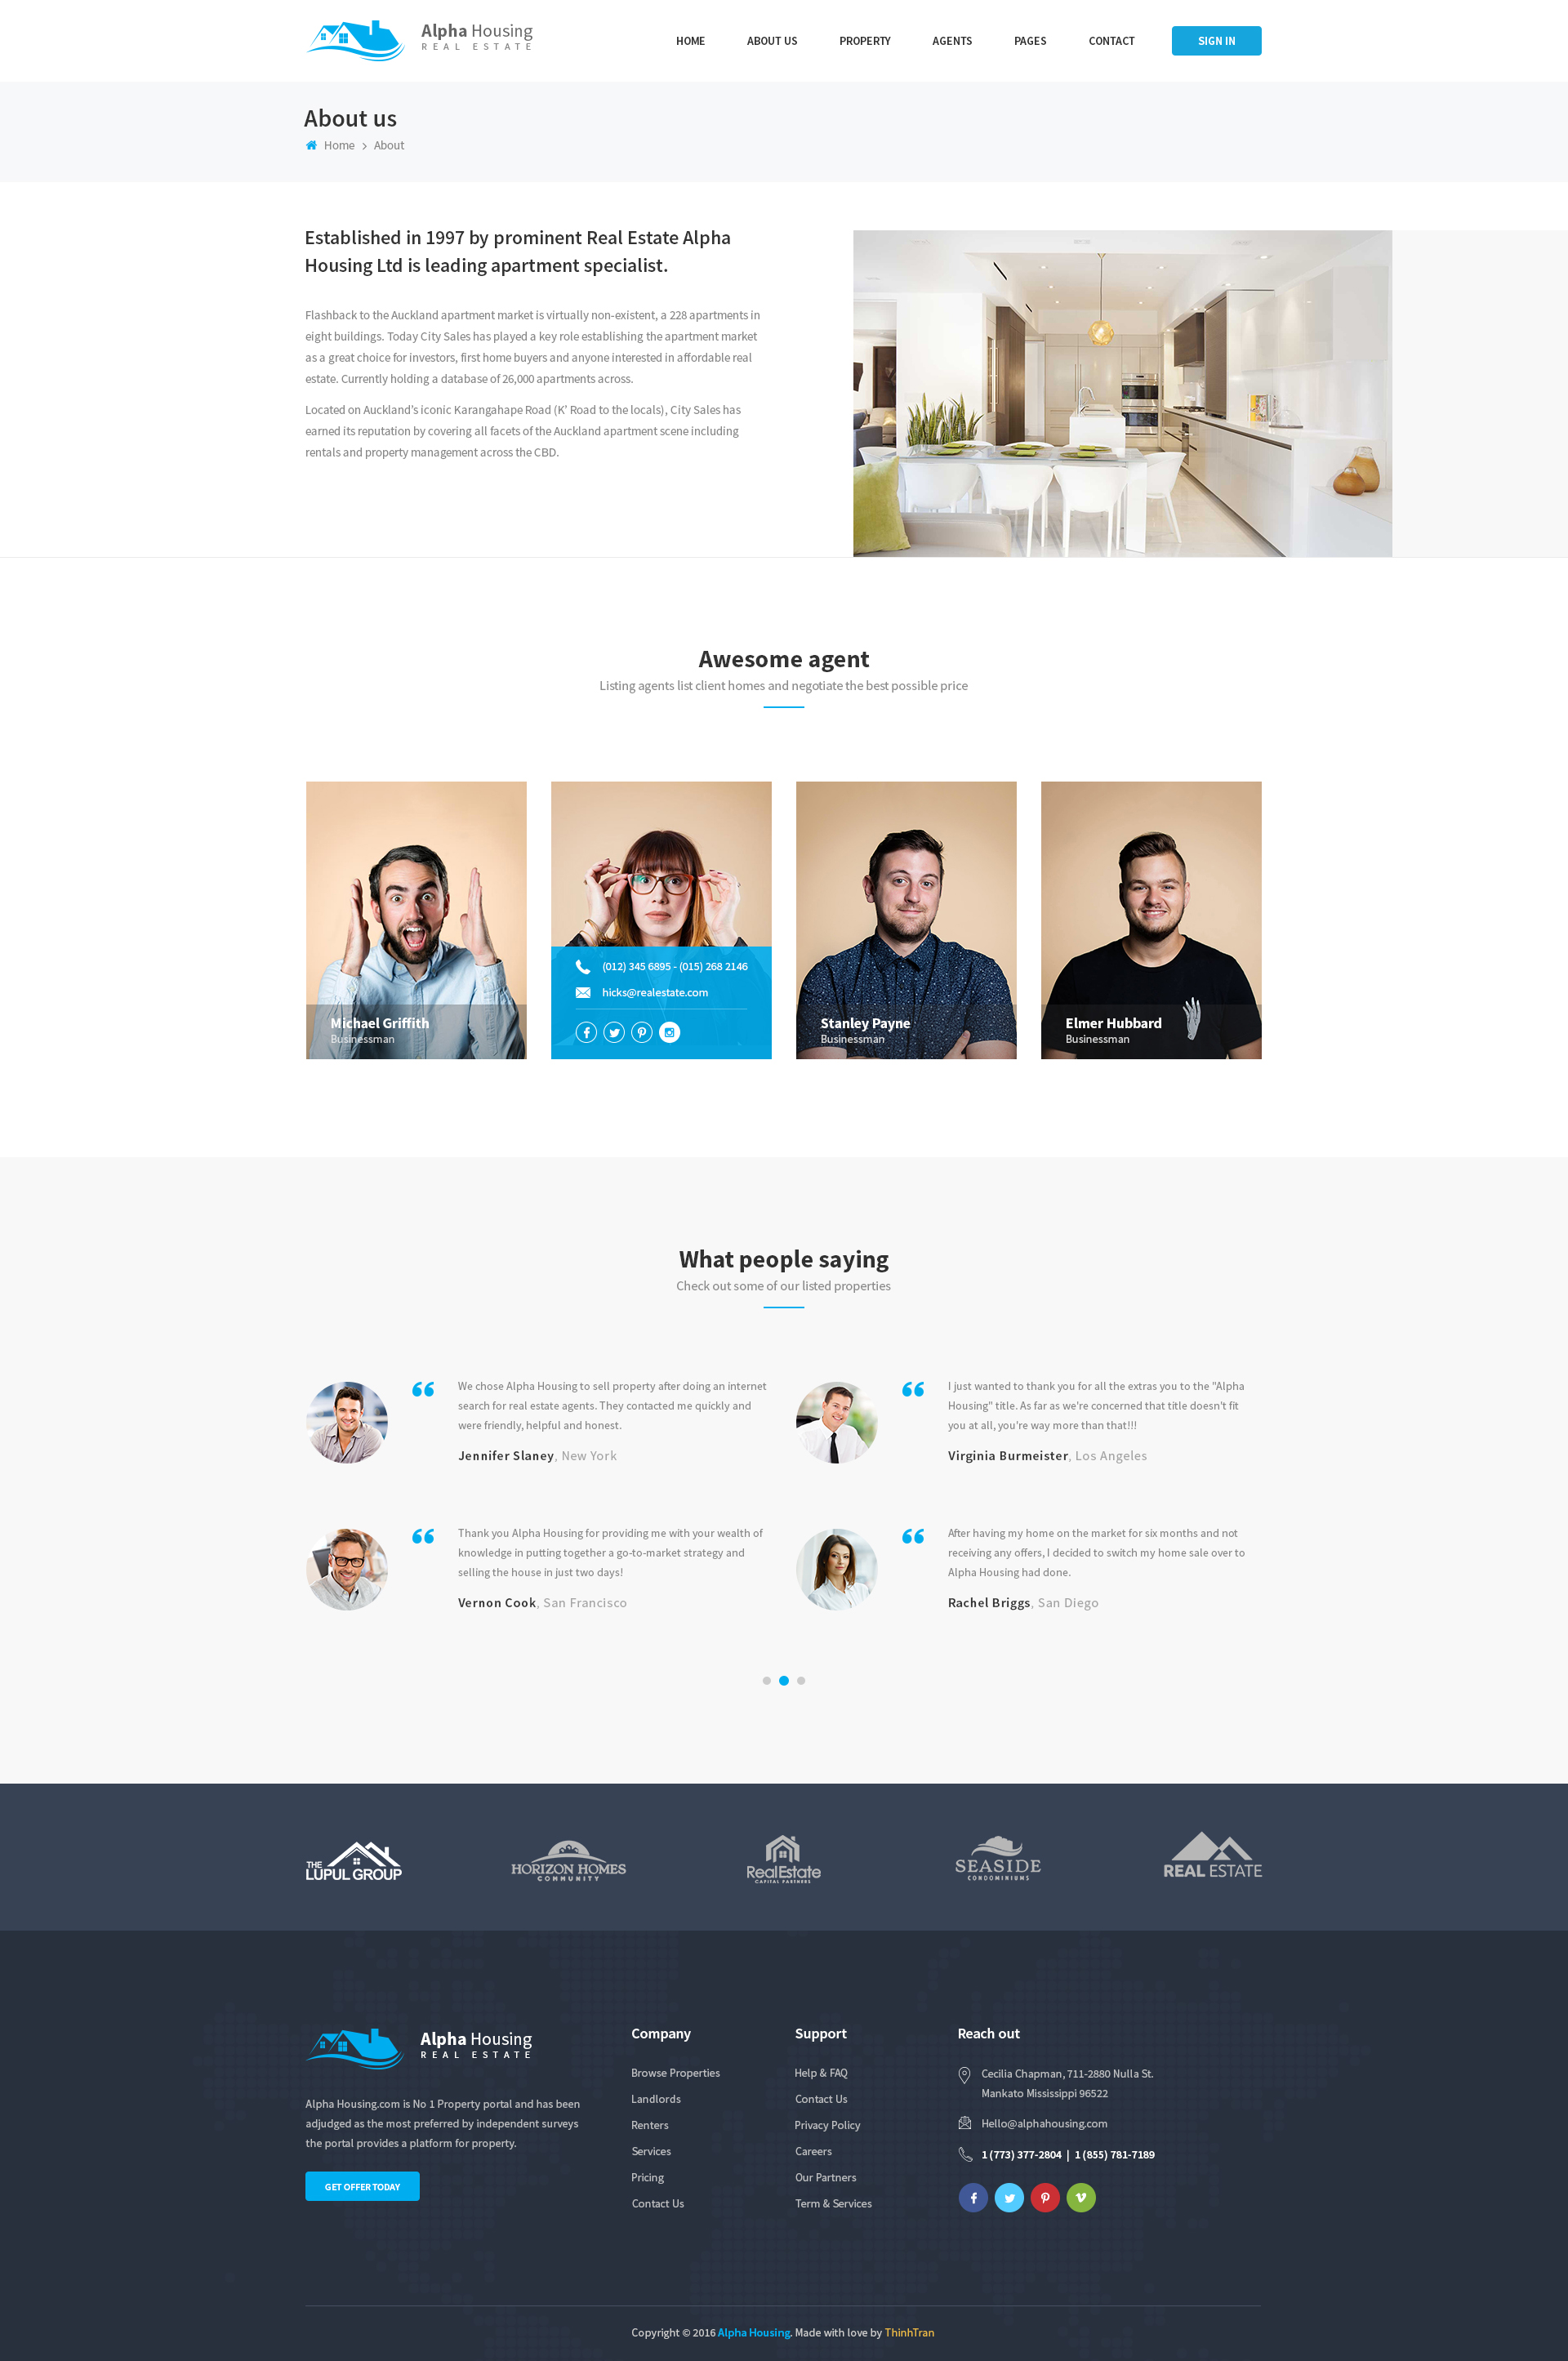 alpha housing real estate psd template by leehari themeforest alpha preview 00 preview jpg alpha preview 01 home 1 jpg alpha preview 02 home 2 jpg alpha preview 03 home 3 jpg alpha preview 04 home 4 jpg